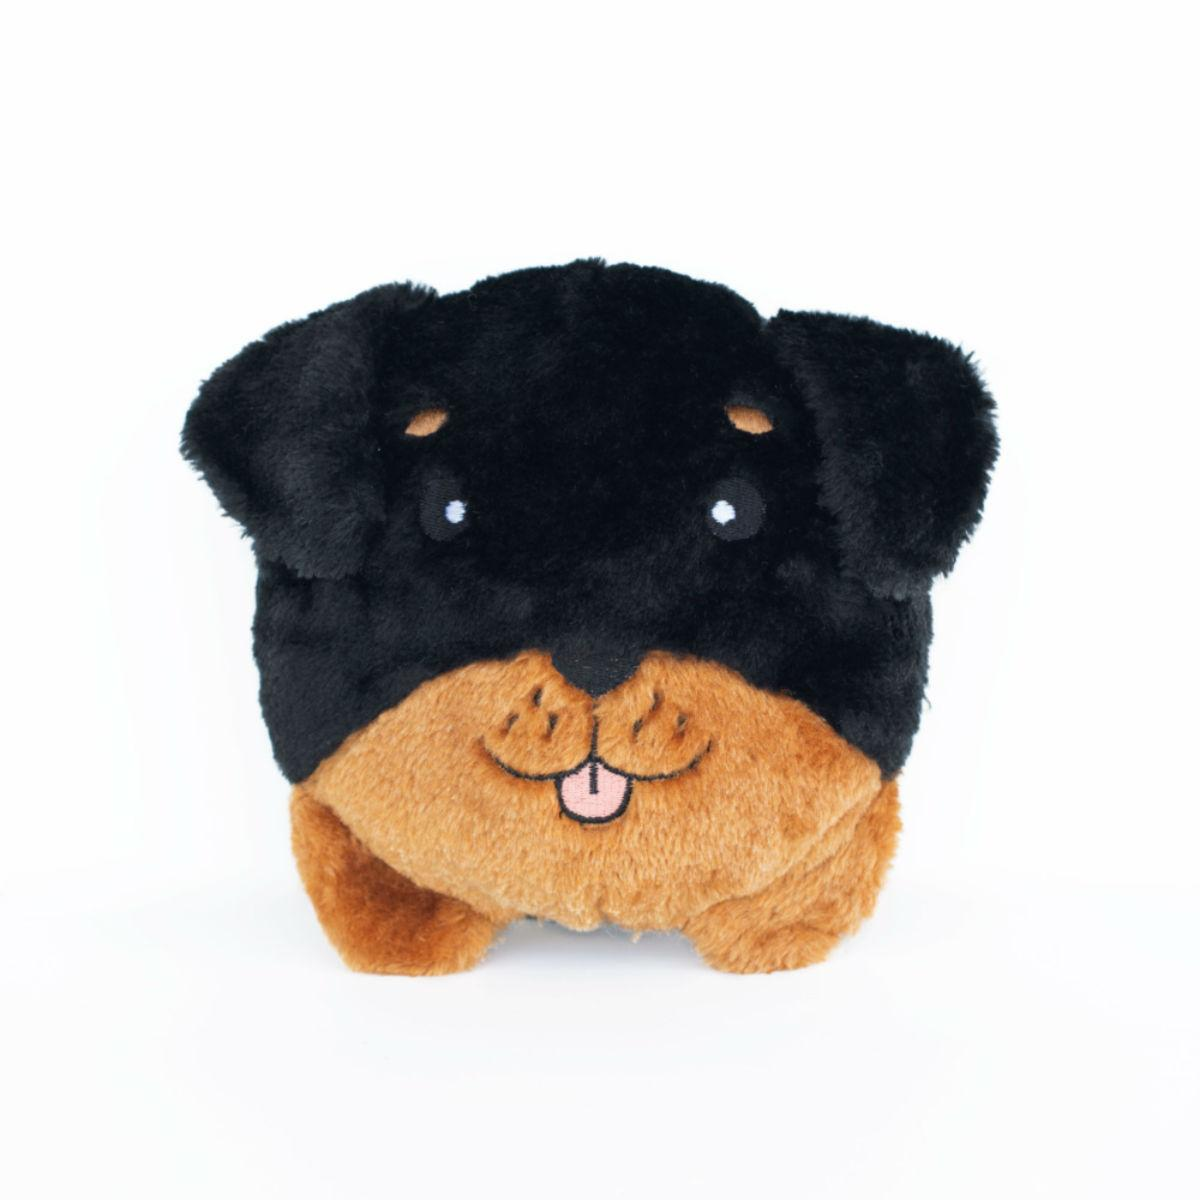 ZippyPaws Squeaky Buns Dog Toy - Rottweiler